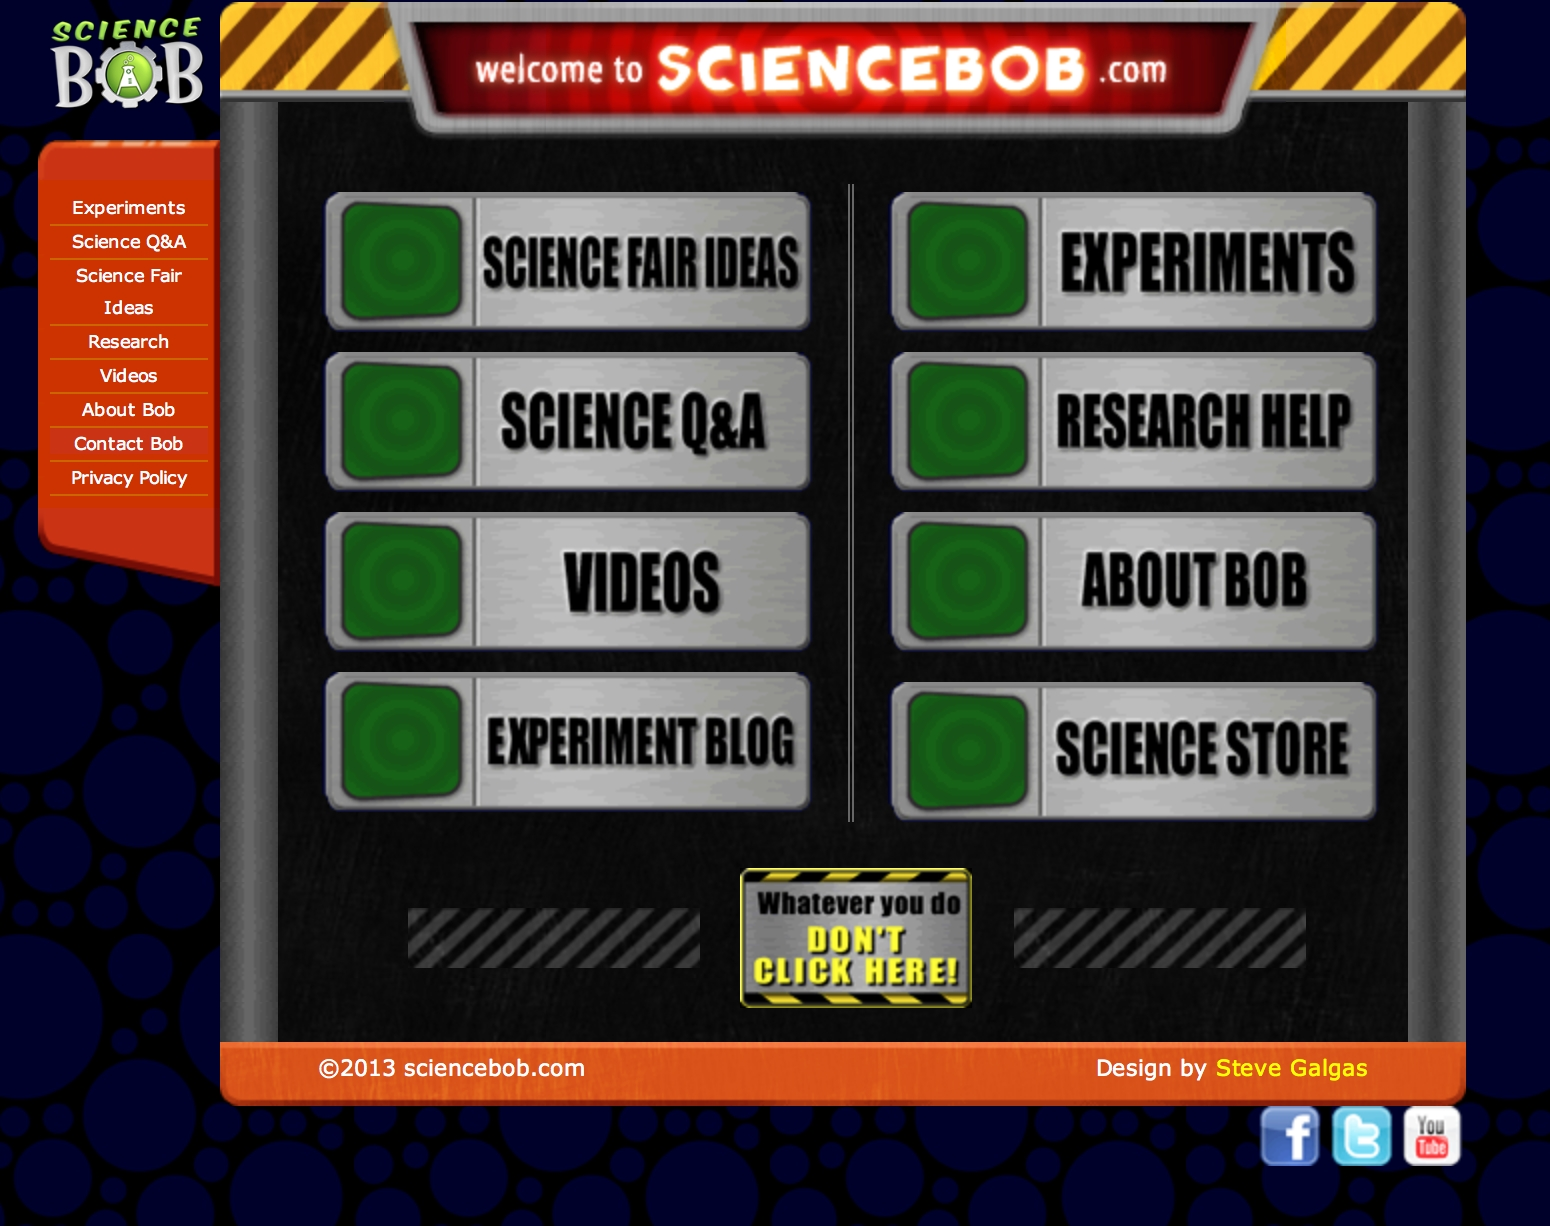 http://www.sciencebob/index.php science bob: science fair ideas